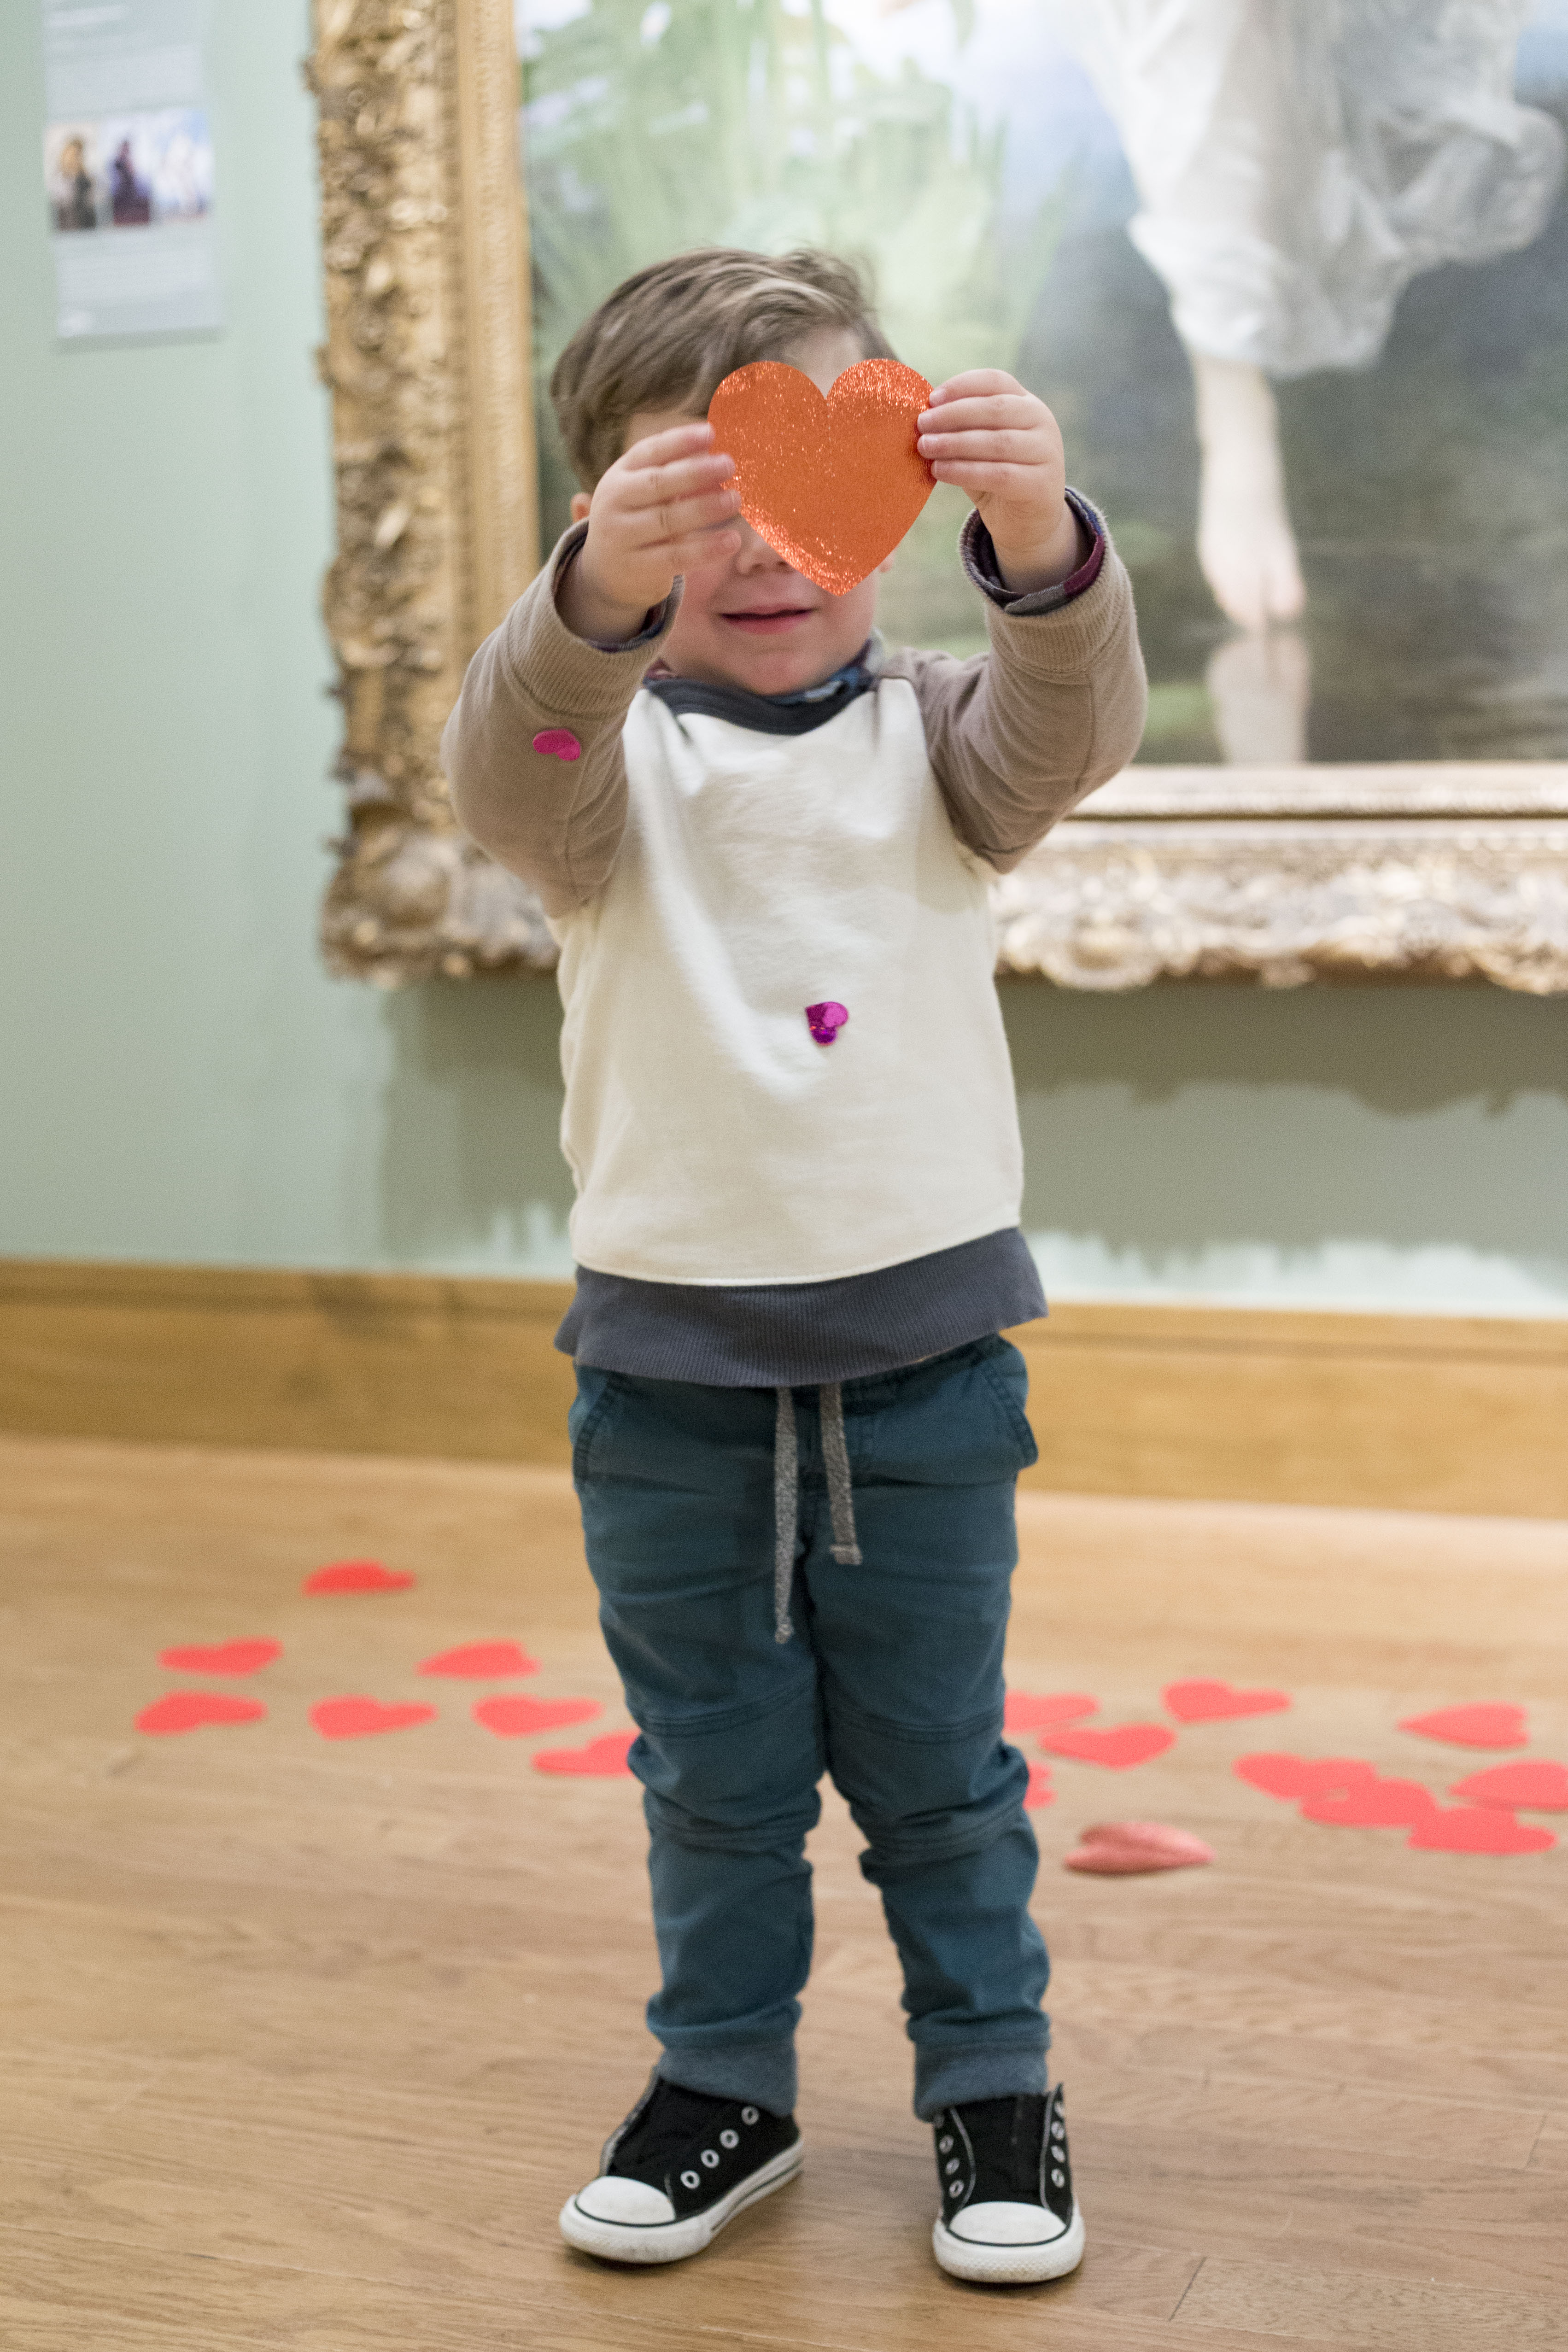 Hearts for Art